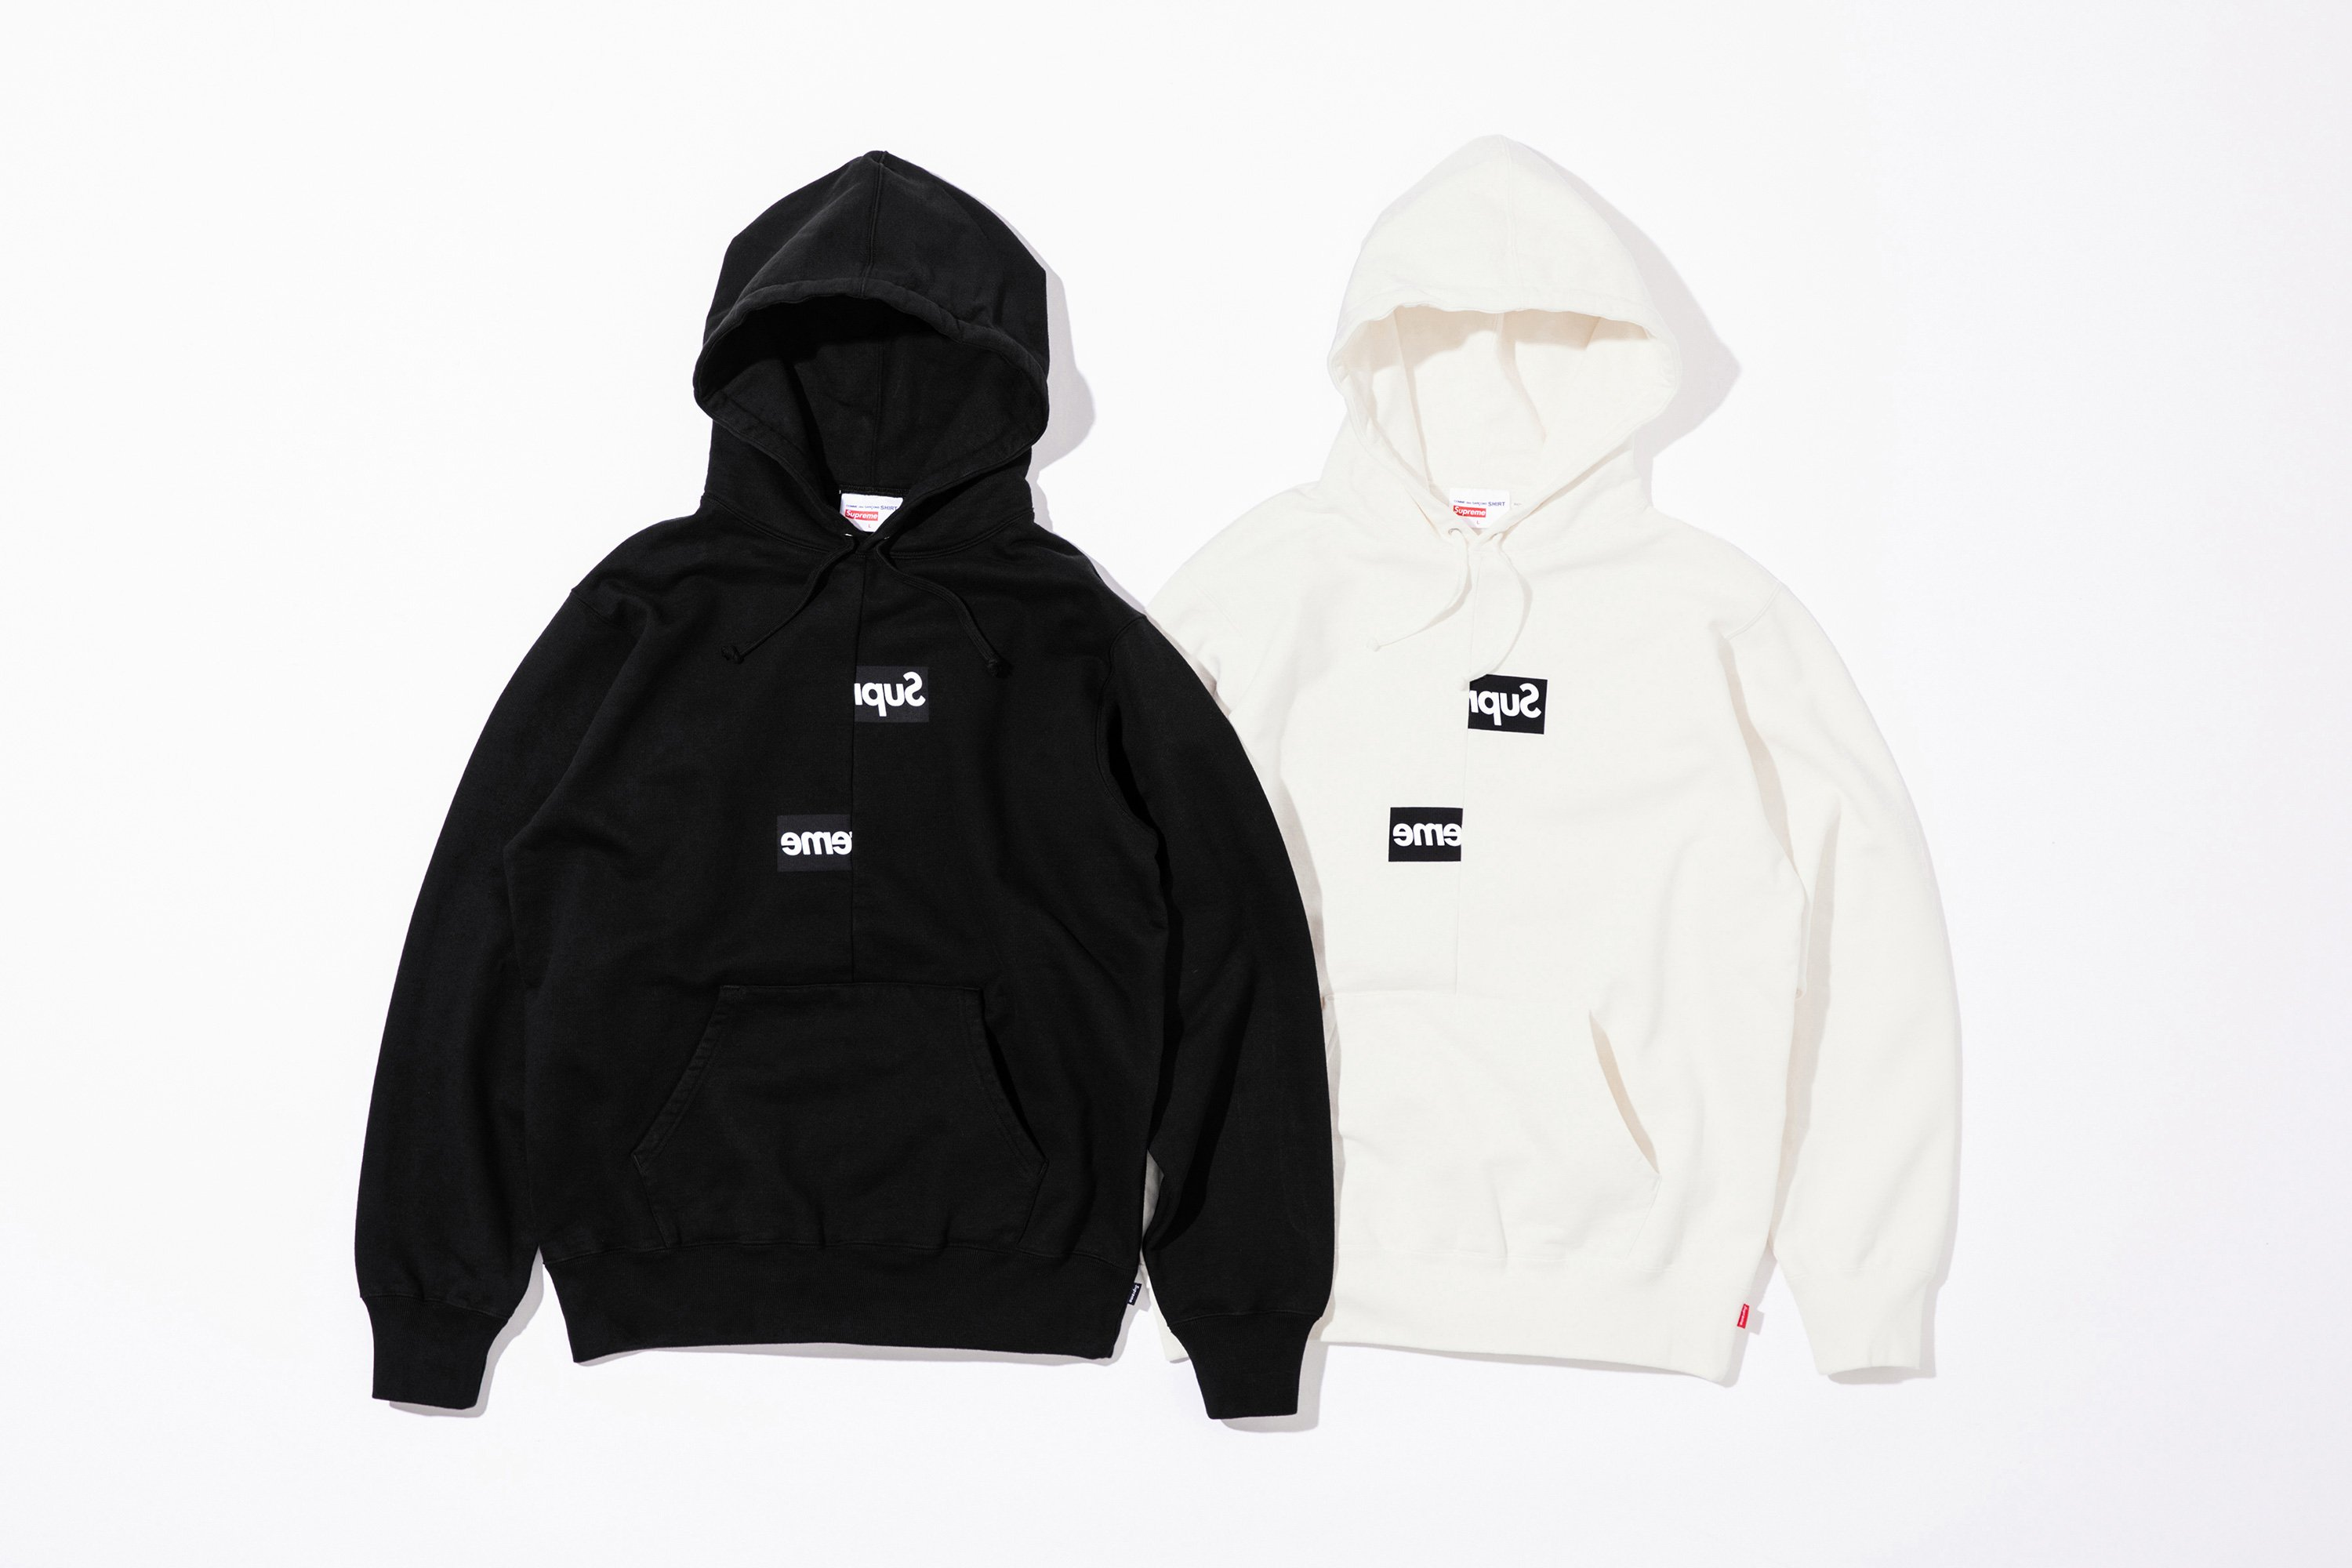 supreme-comme-des-garcons-shirt-split-box-logo-hooded-sweatshirt-2018aw-collaboration-release-20180915-week4